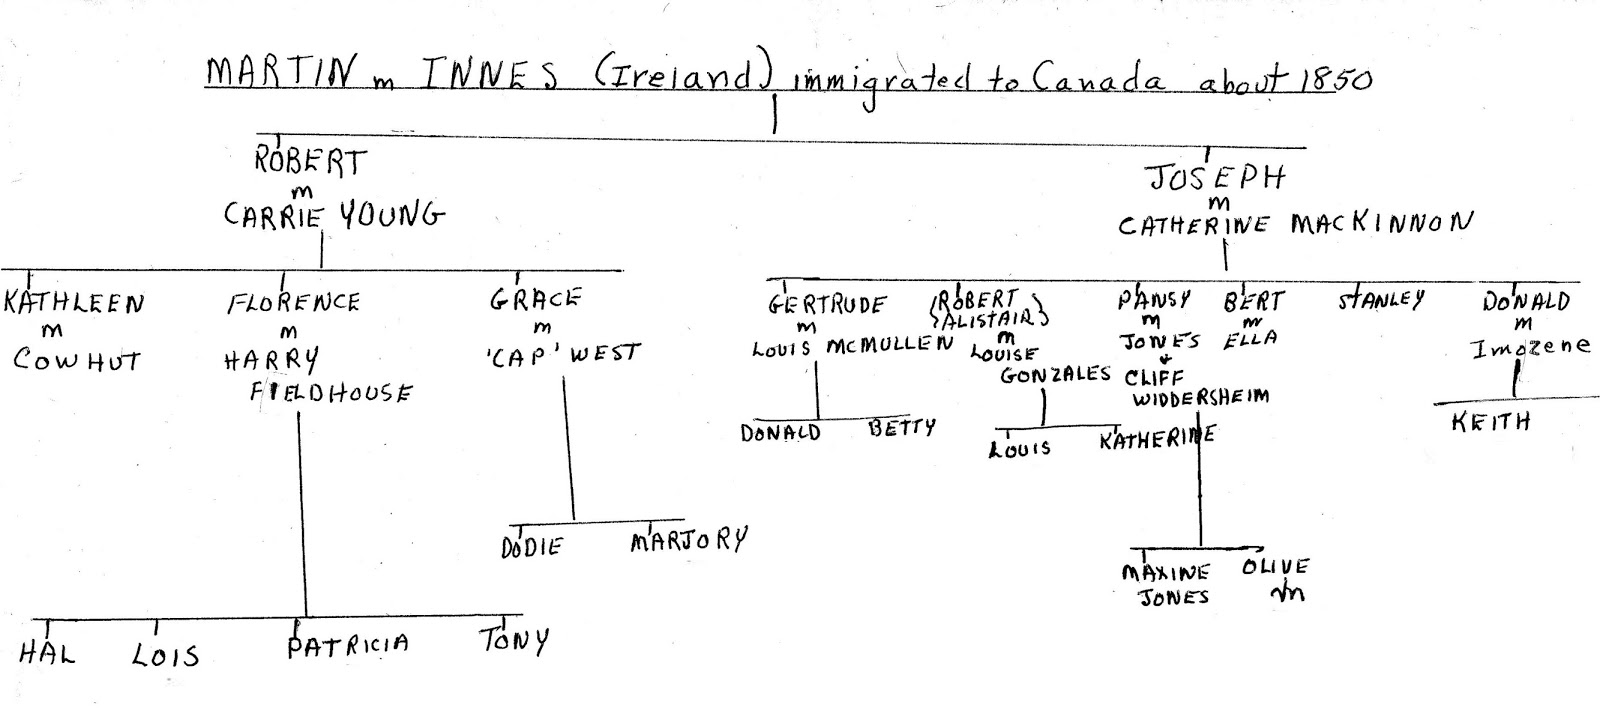 Hand-drawn Family Tree for Martin m. Innes (created Jan 1990)